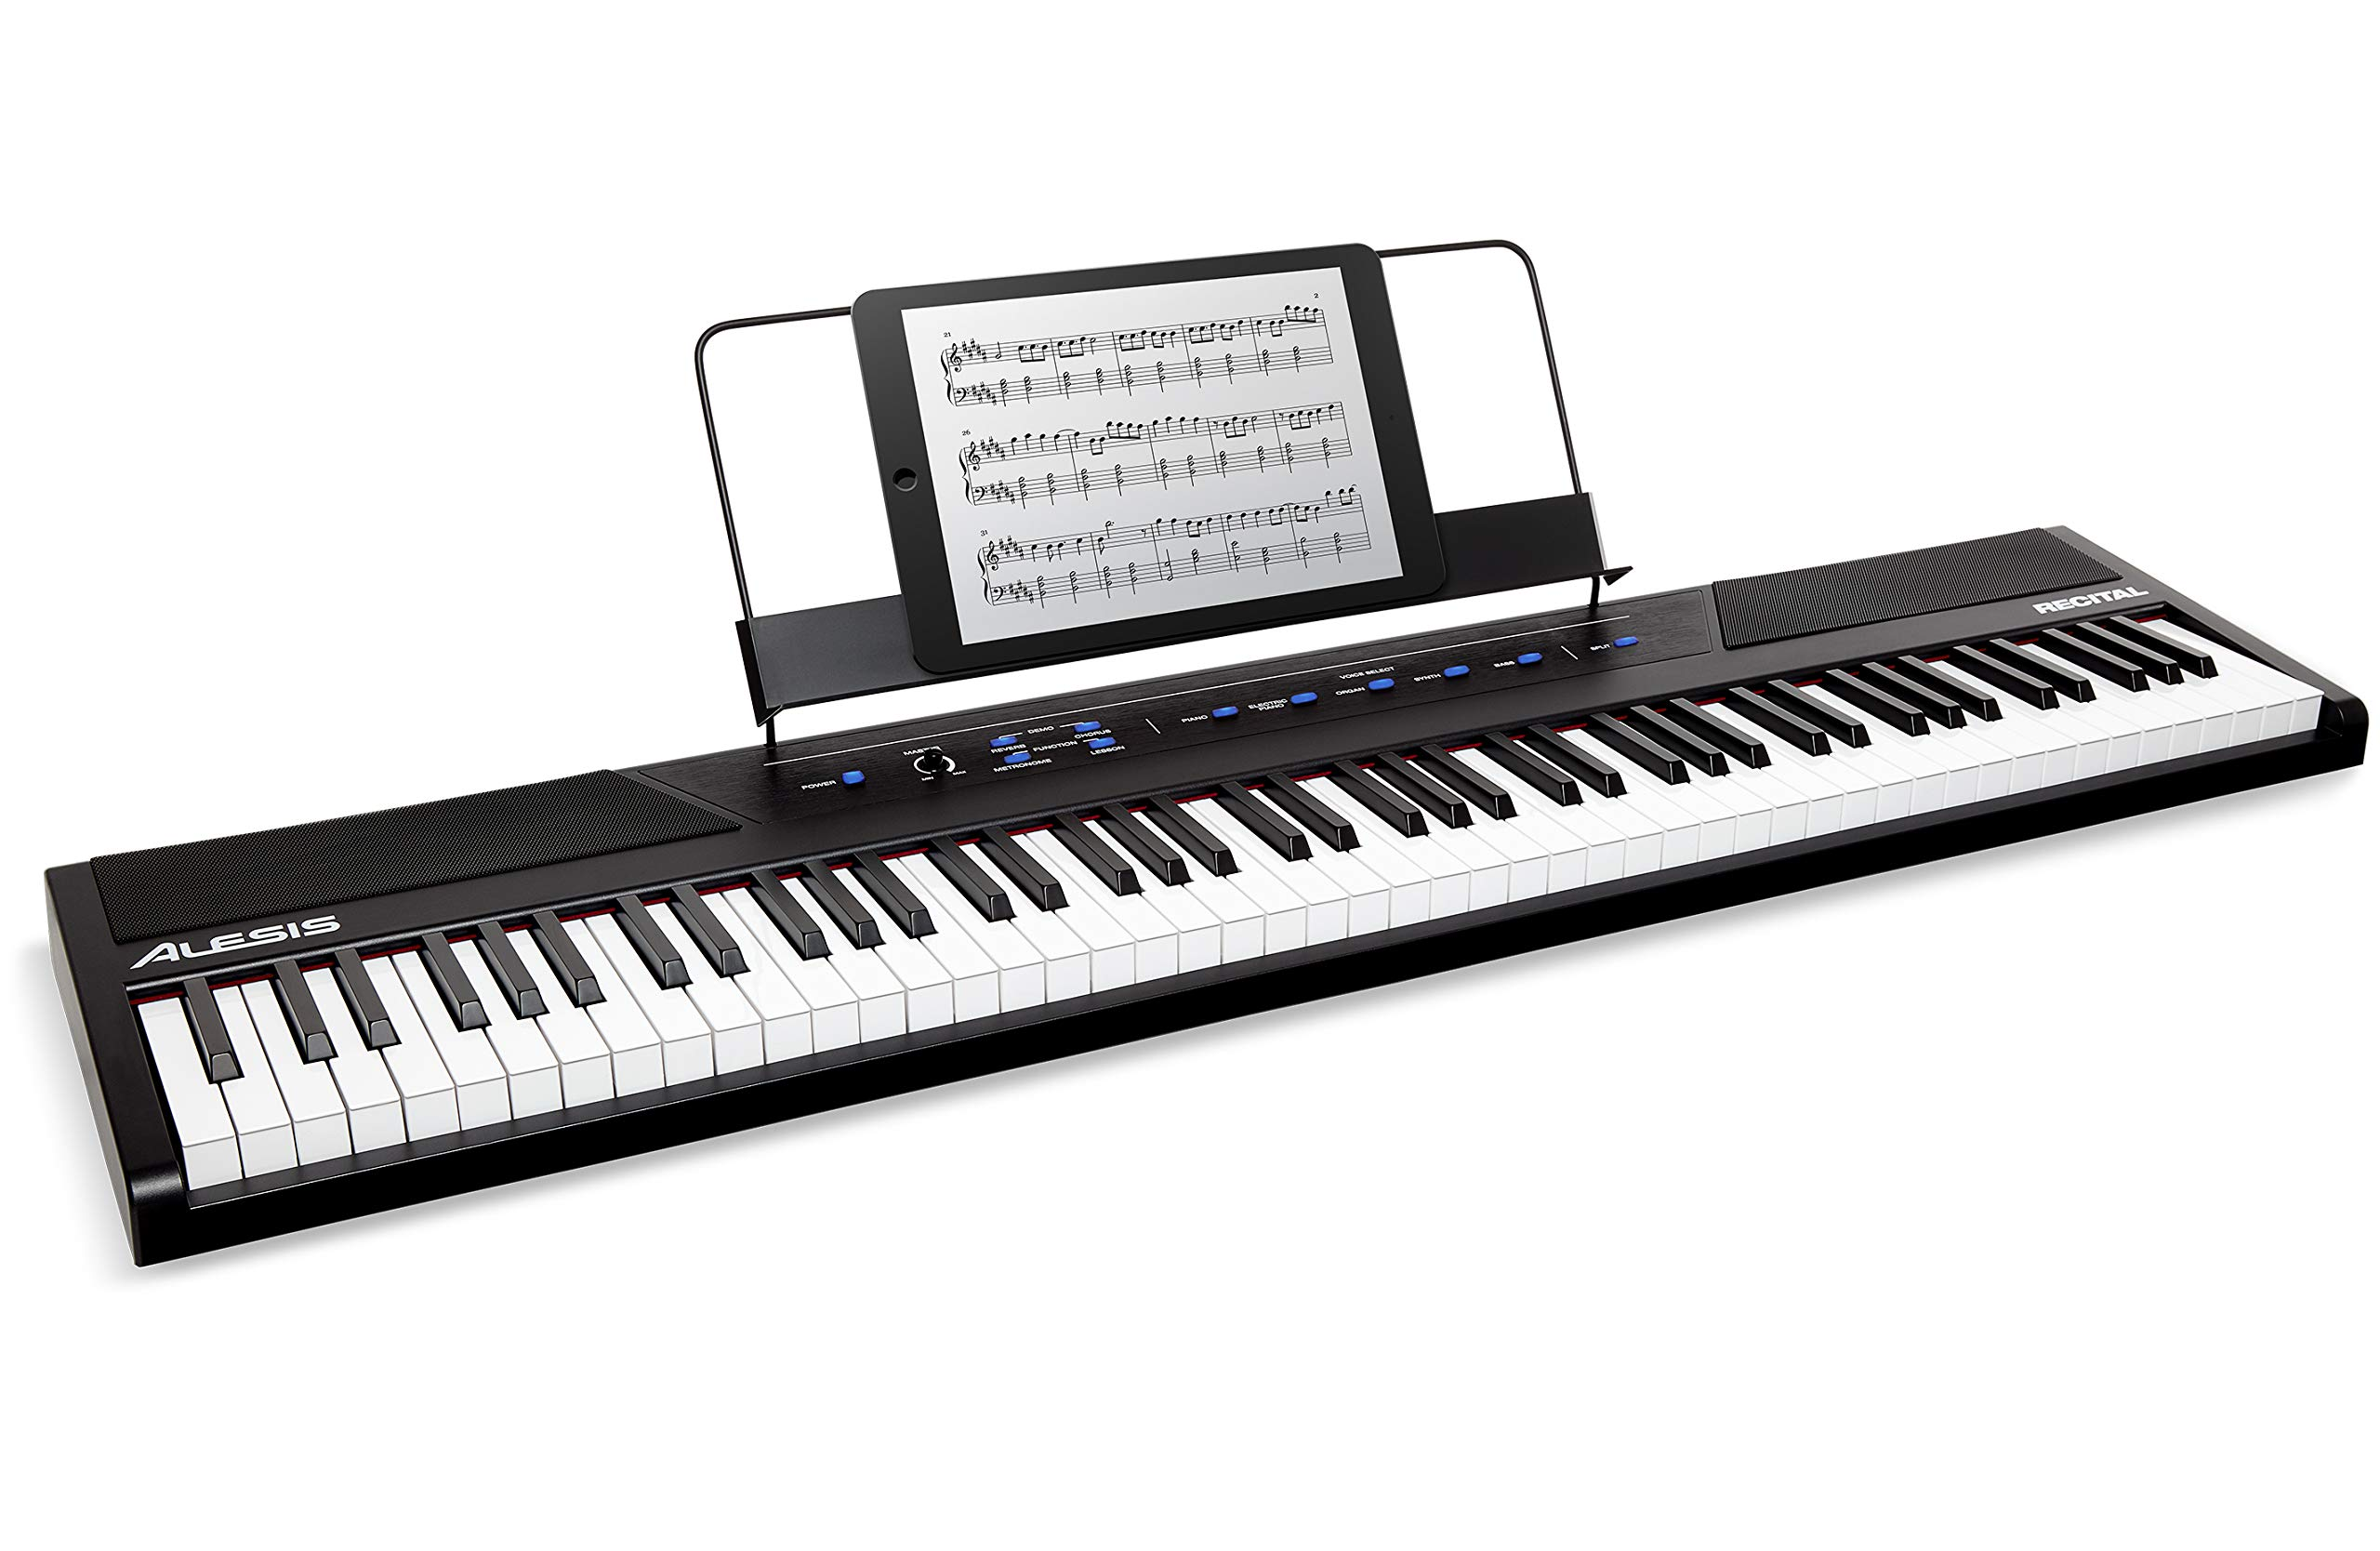 40a19b21754 Top 10 Piano or Keyboard for Beginners: 2019 Review and Guide